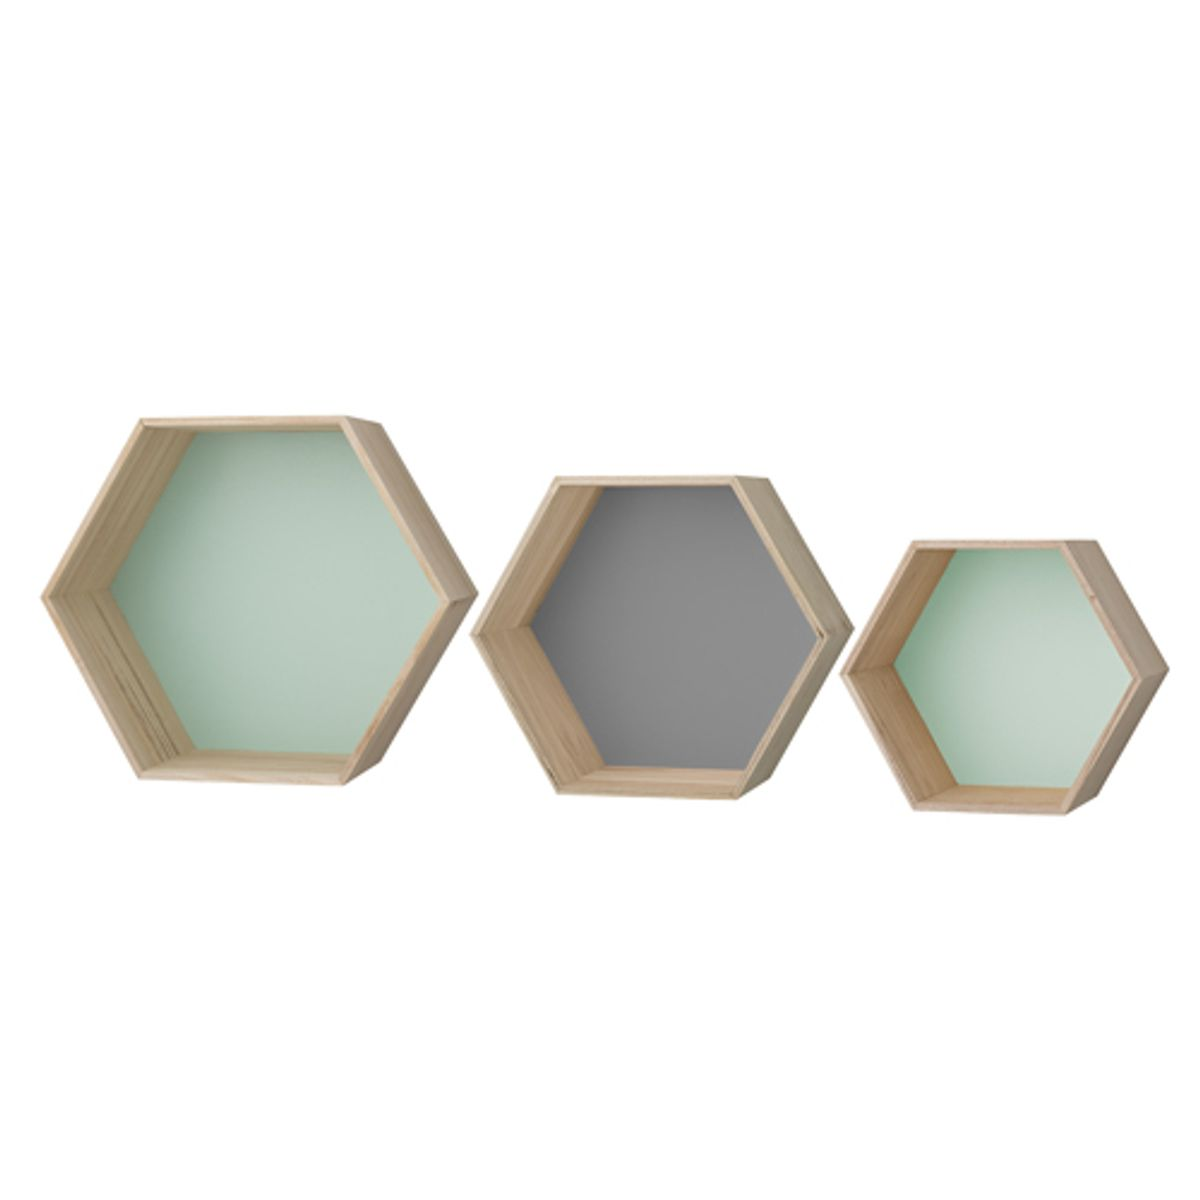 set de 3 tag res murales hexagonales en bois gris et vert. Black Bedroom Furniture Sets. Home Design Ideas